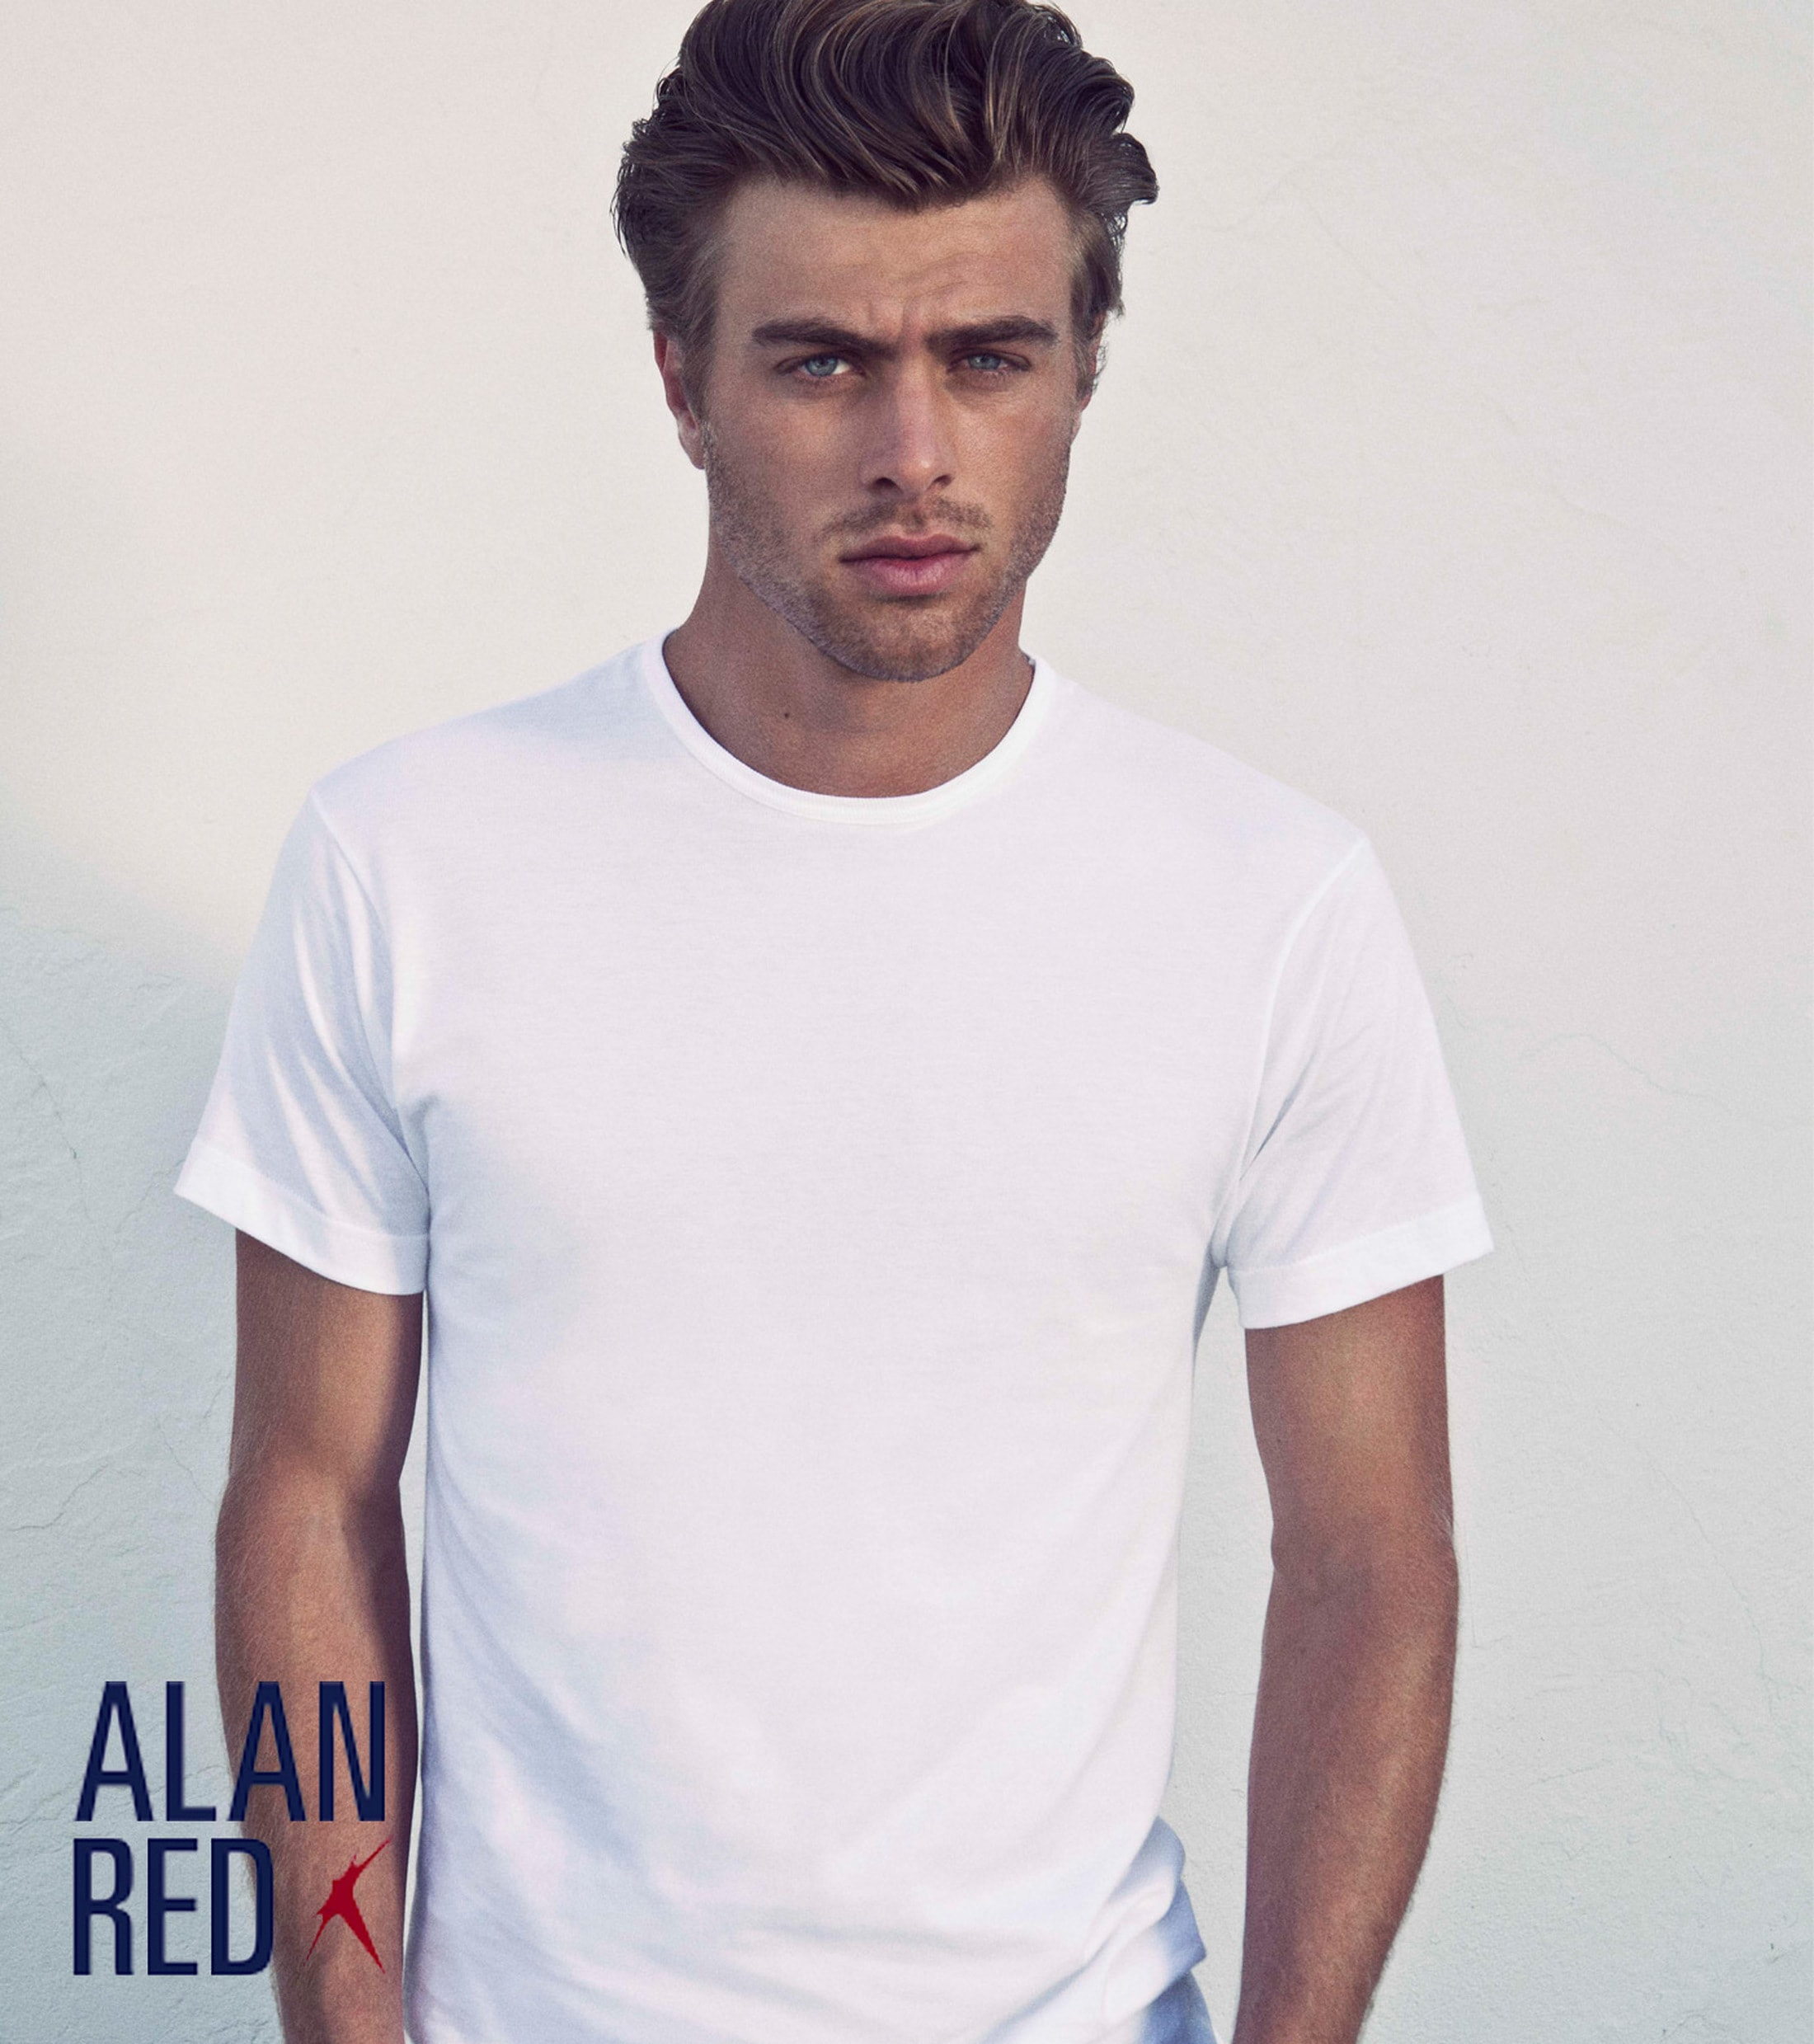 Alan Red Derby Round Neck T-shirt White 2-Pack foto 3